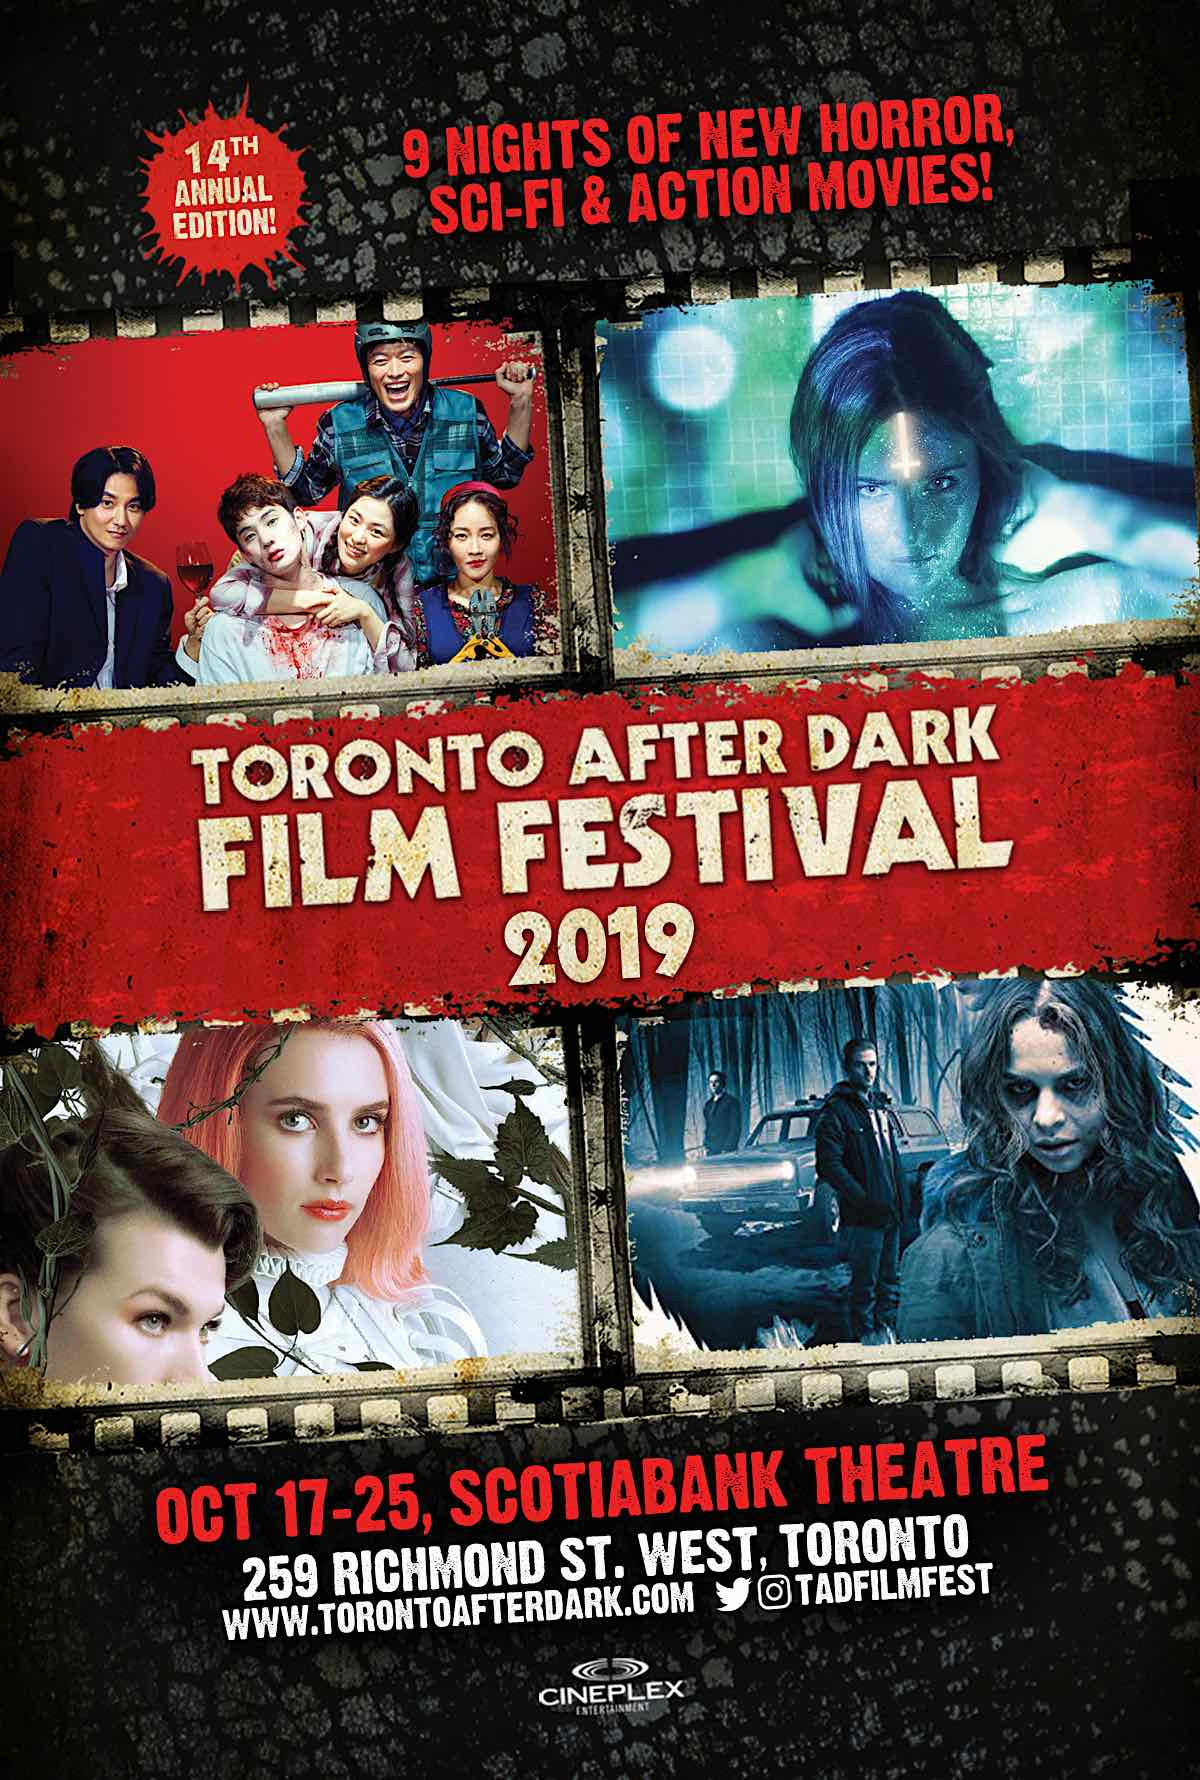 Toronto After Dark Film Festival 2019